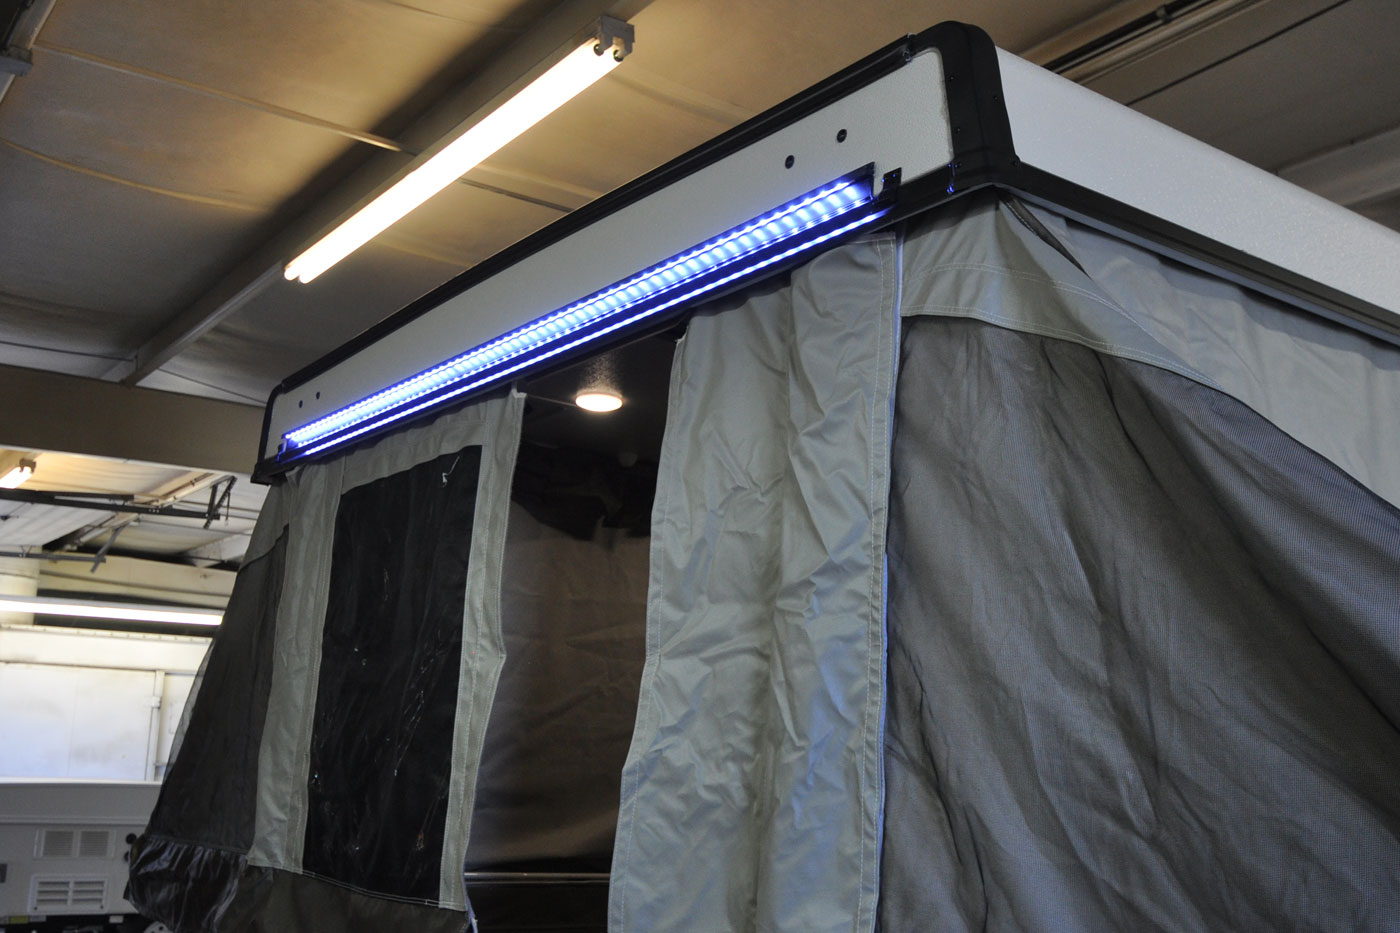 Options Accessories For Flagstaff Pop Up Trailers Roberts Sales Starcraft Camper Fuse Box Parts Led Light Rail 8 Roof